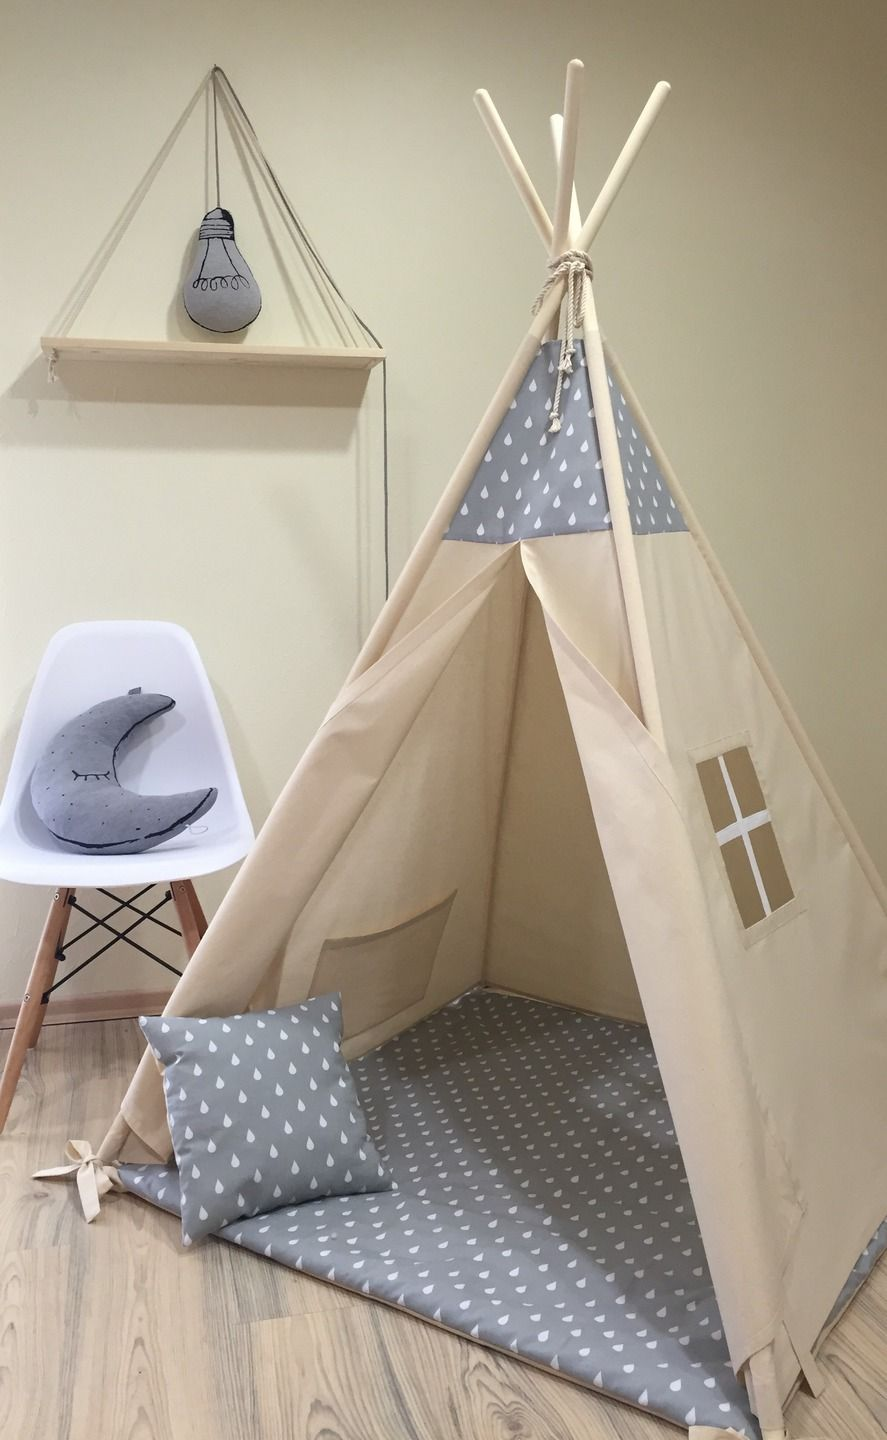 pin von mina auf tents teepees wigwams and so pinterest kinderzimmer kinder tipi und kinder. Black Bedroom Furniture Sets. Home Design Ideas